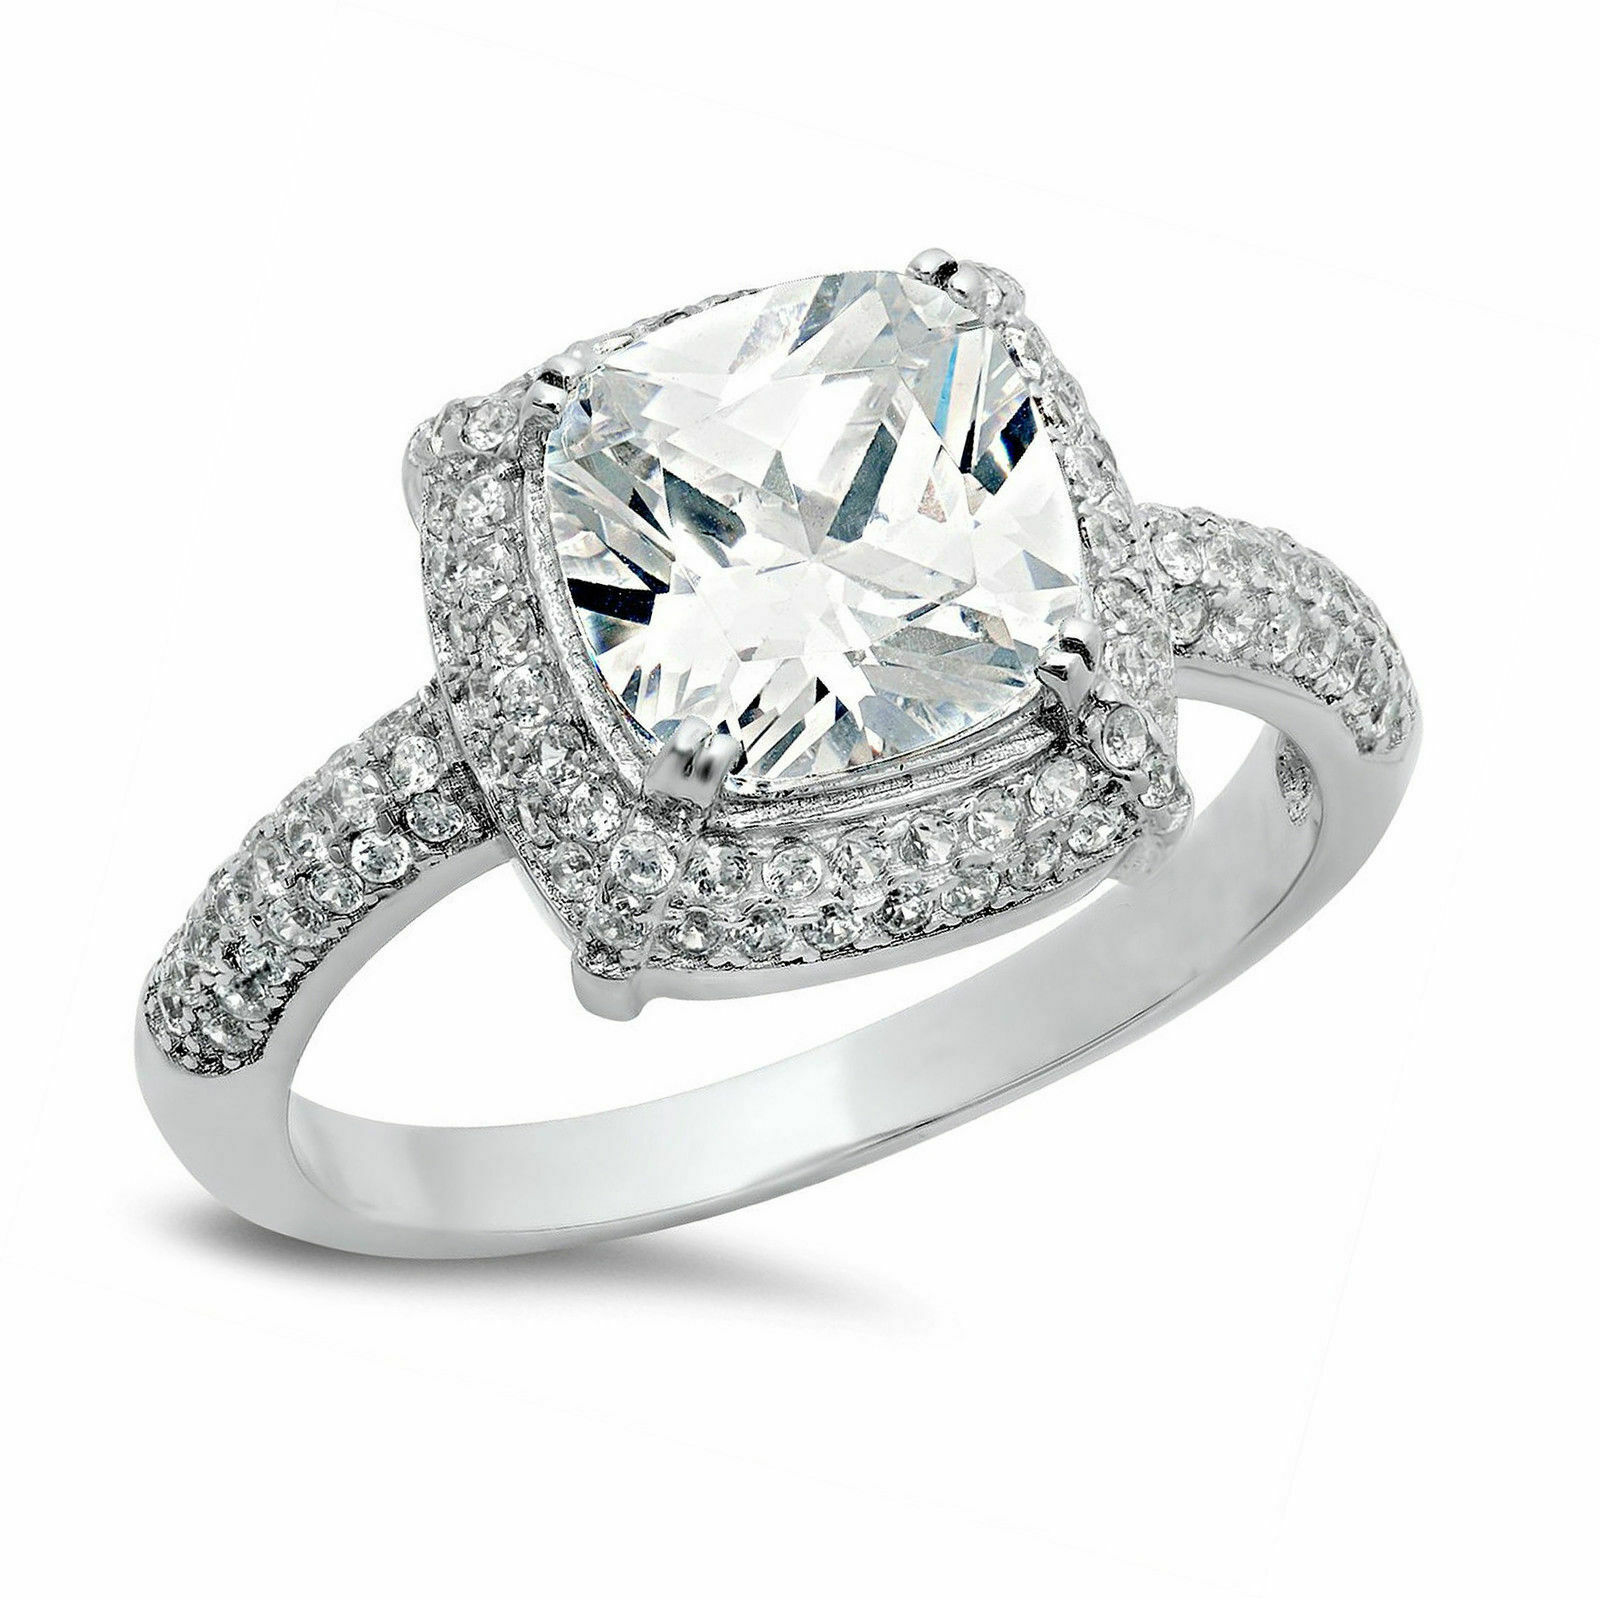 GIA Certified Diamond Engagement Ring 3.30 carat Cushion Cut 18k White Gold